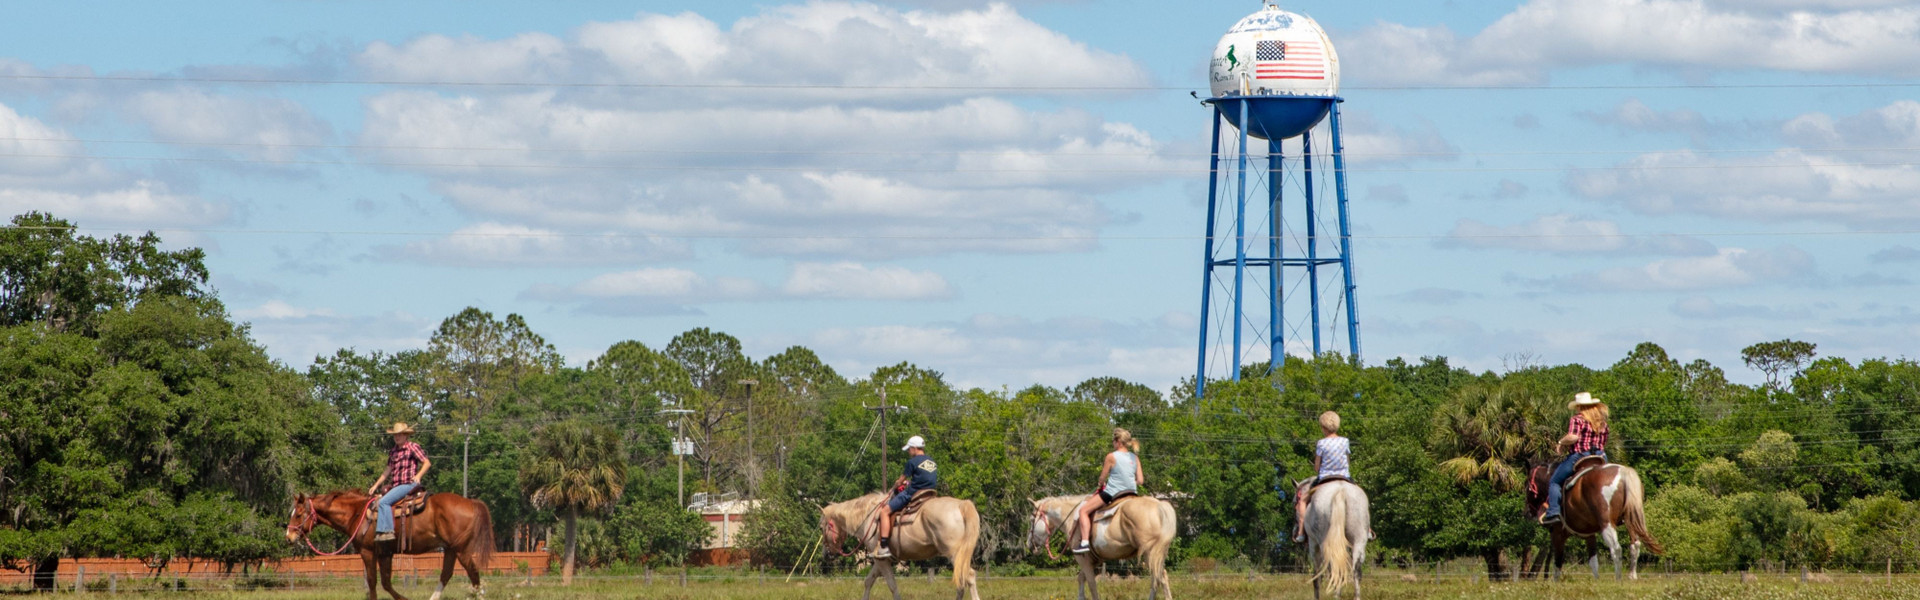 Horseback Riding Orlando Florida | Guided Trail Ride